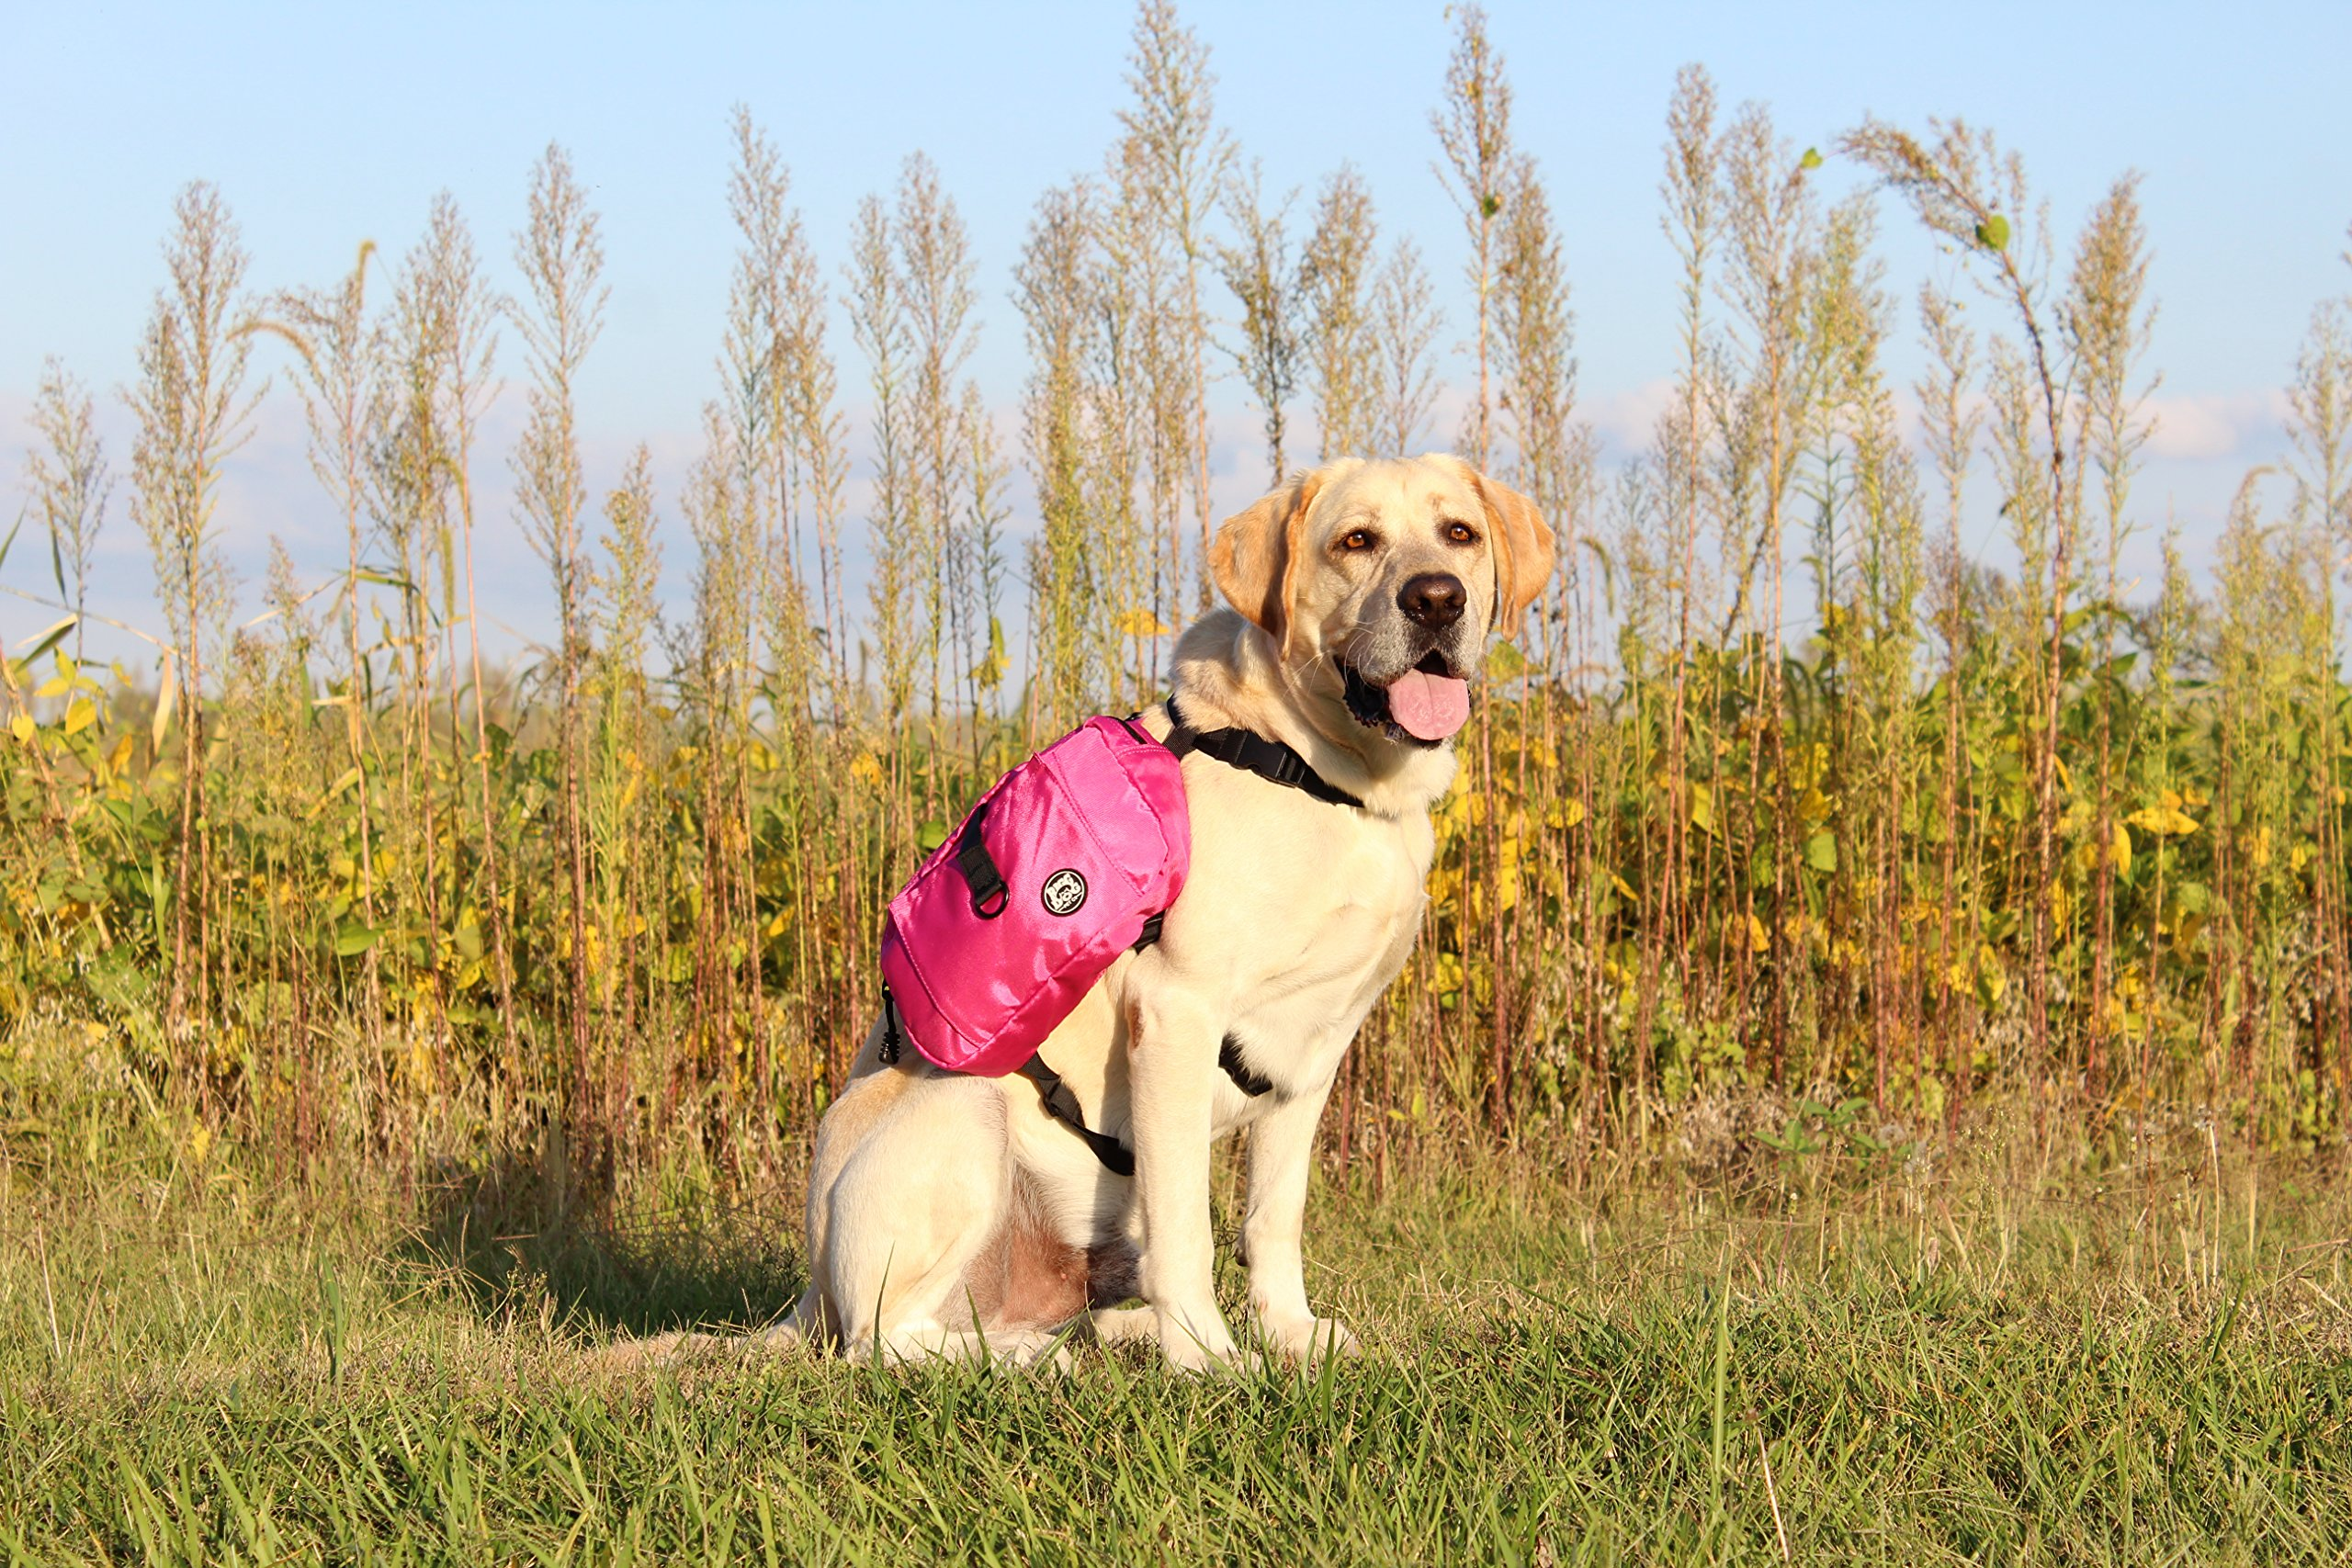 RIGG DOG Oxford Canvas Dog Saddle Bag Harness Backpack - Perfect Dog Hiking Pack for Treks, Camping and Hound Travel | Durable, Lightweight, Saddlebags for Medium and Large Dogs (Pink)